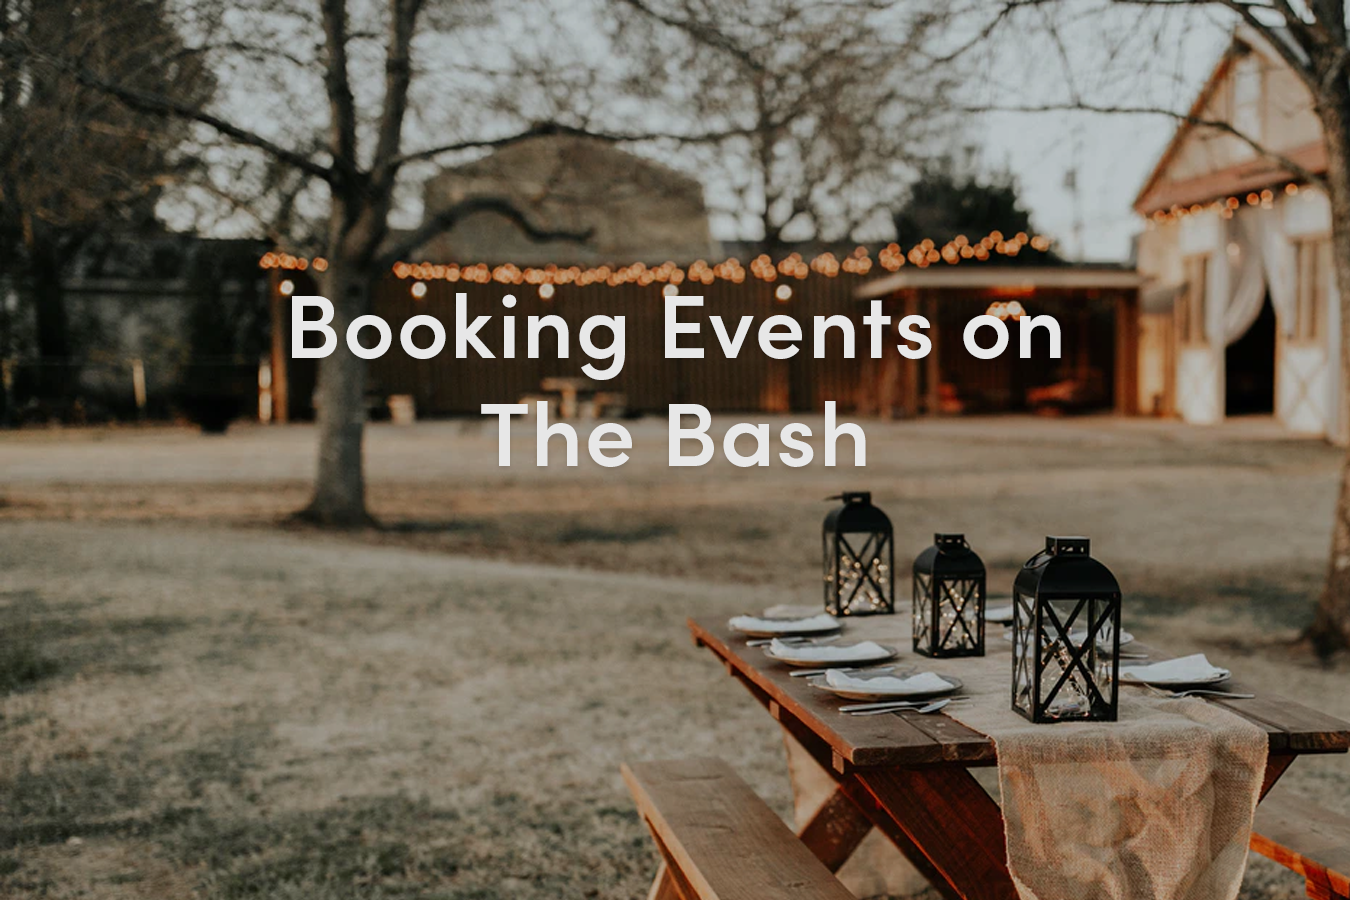 Booking Events on The Bash